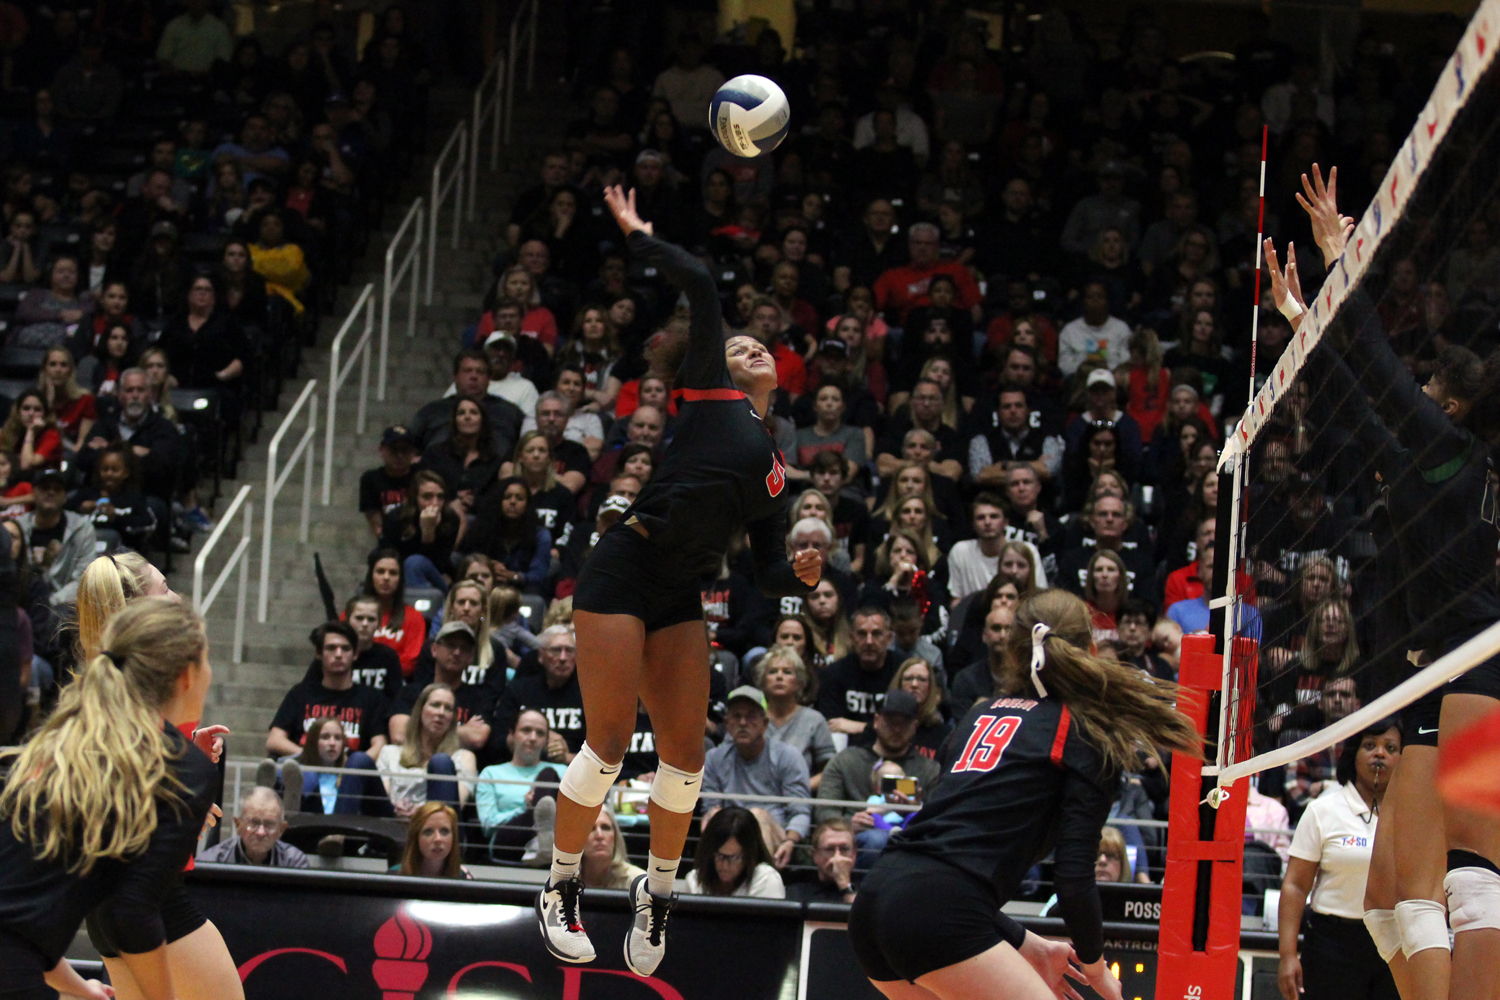 Sophomore+Cecily+Bramschreiber+jumps+up+to+hit+the+ball+during+the+third+set.